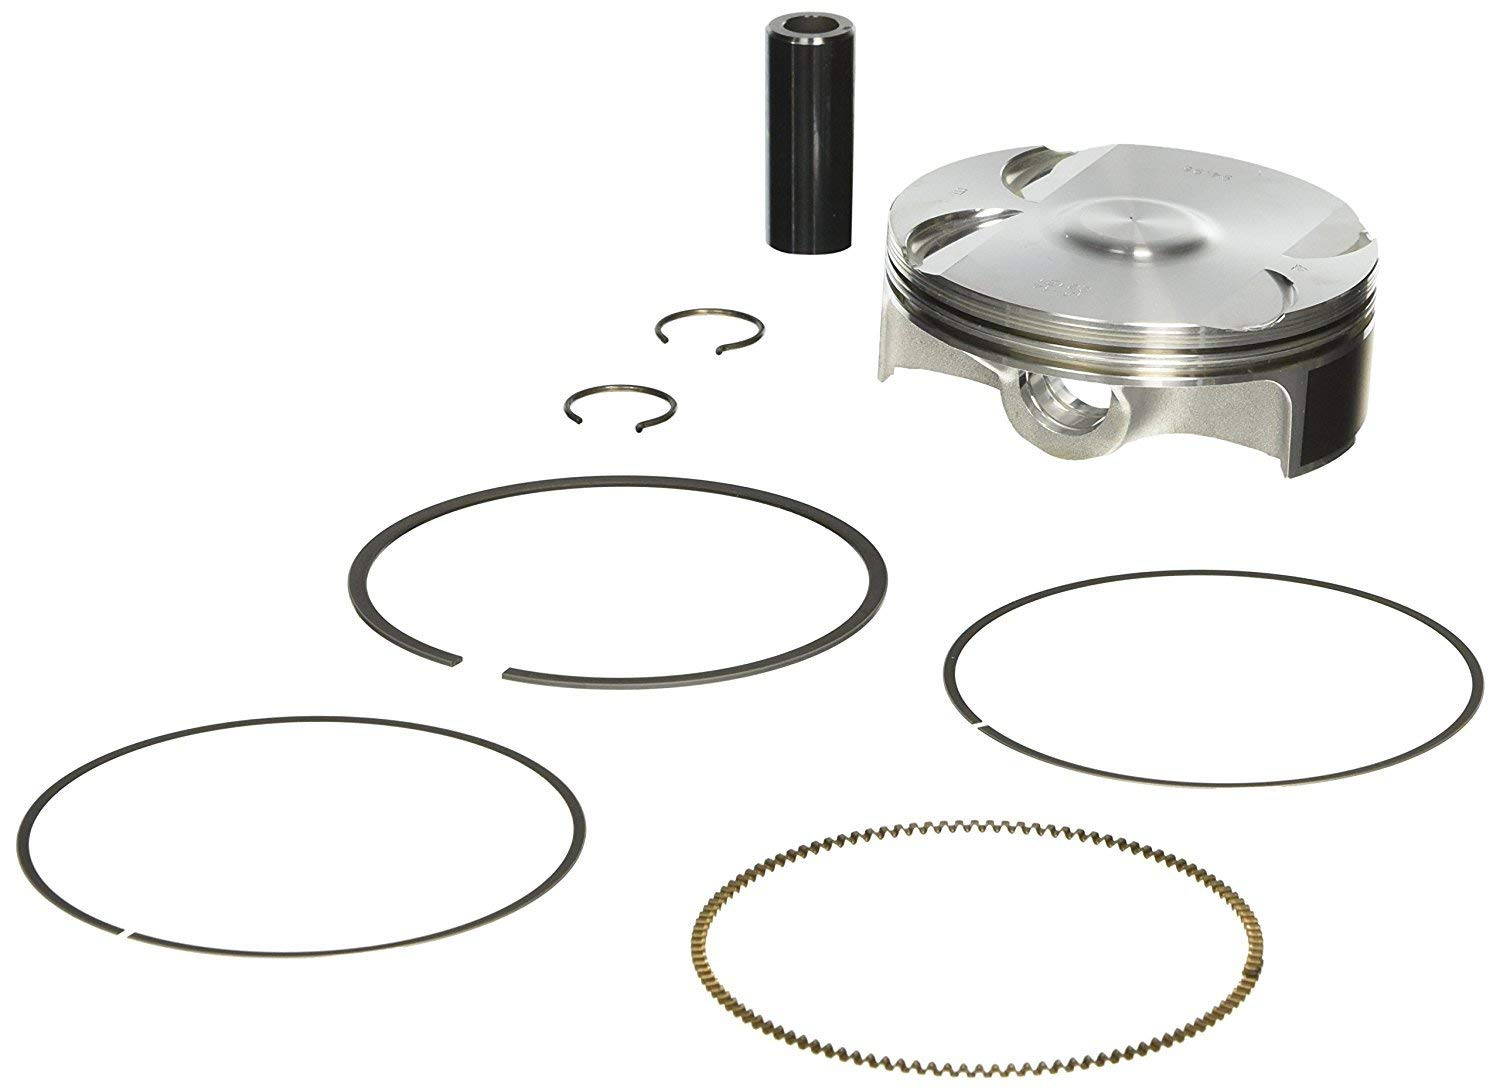 New Vertex Replica Piston Kit for KTM 450 XC-W (12-16)